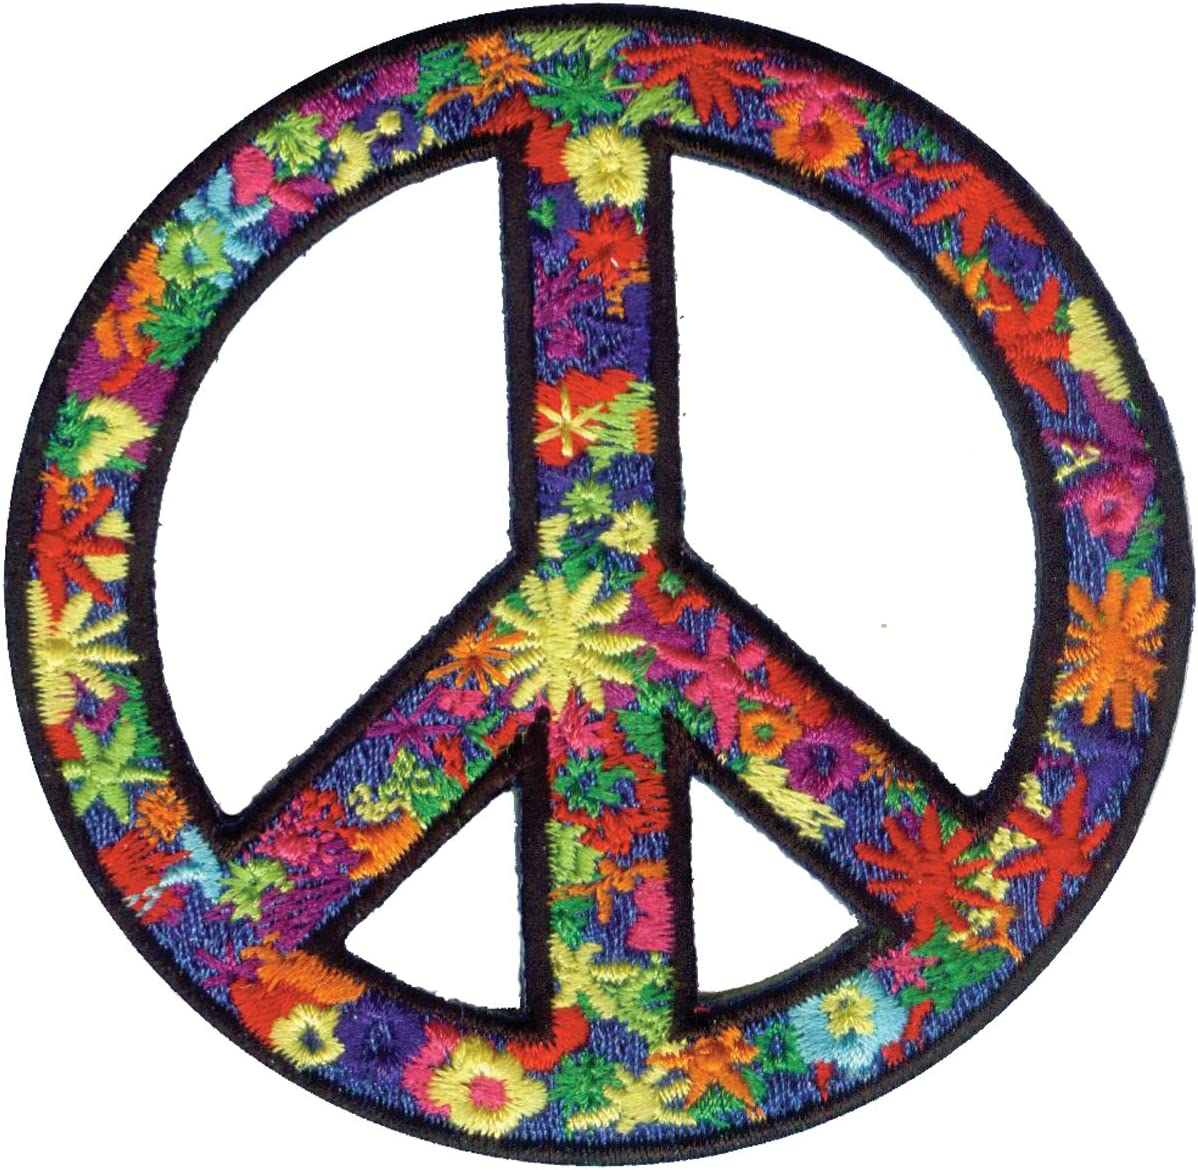 60s , 70s Hippie Clothes for Men C&D Visionary Application Flower Power Peace Patch $5.34 AT vintagedancer.com